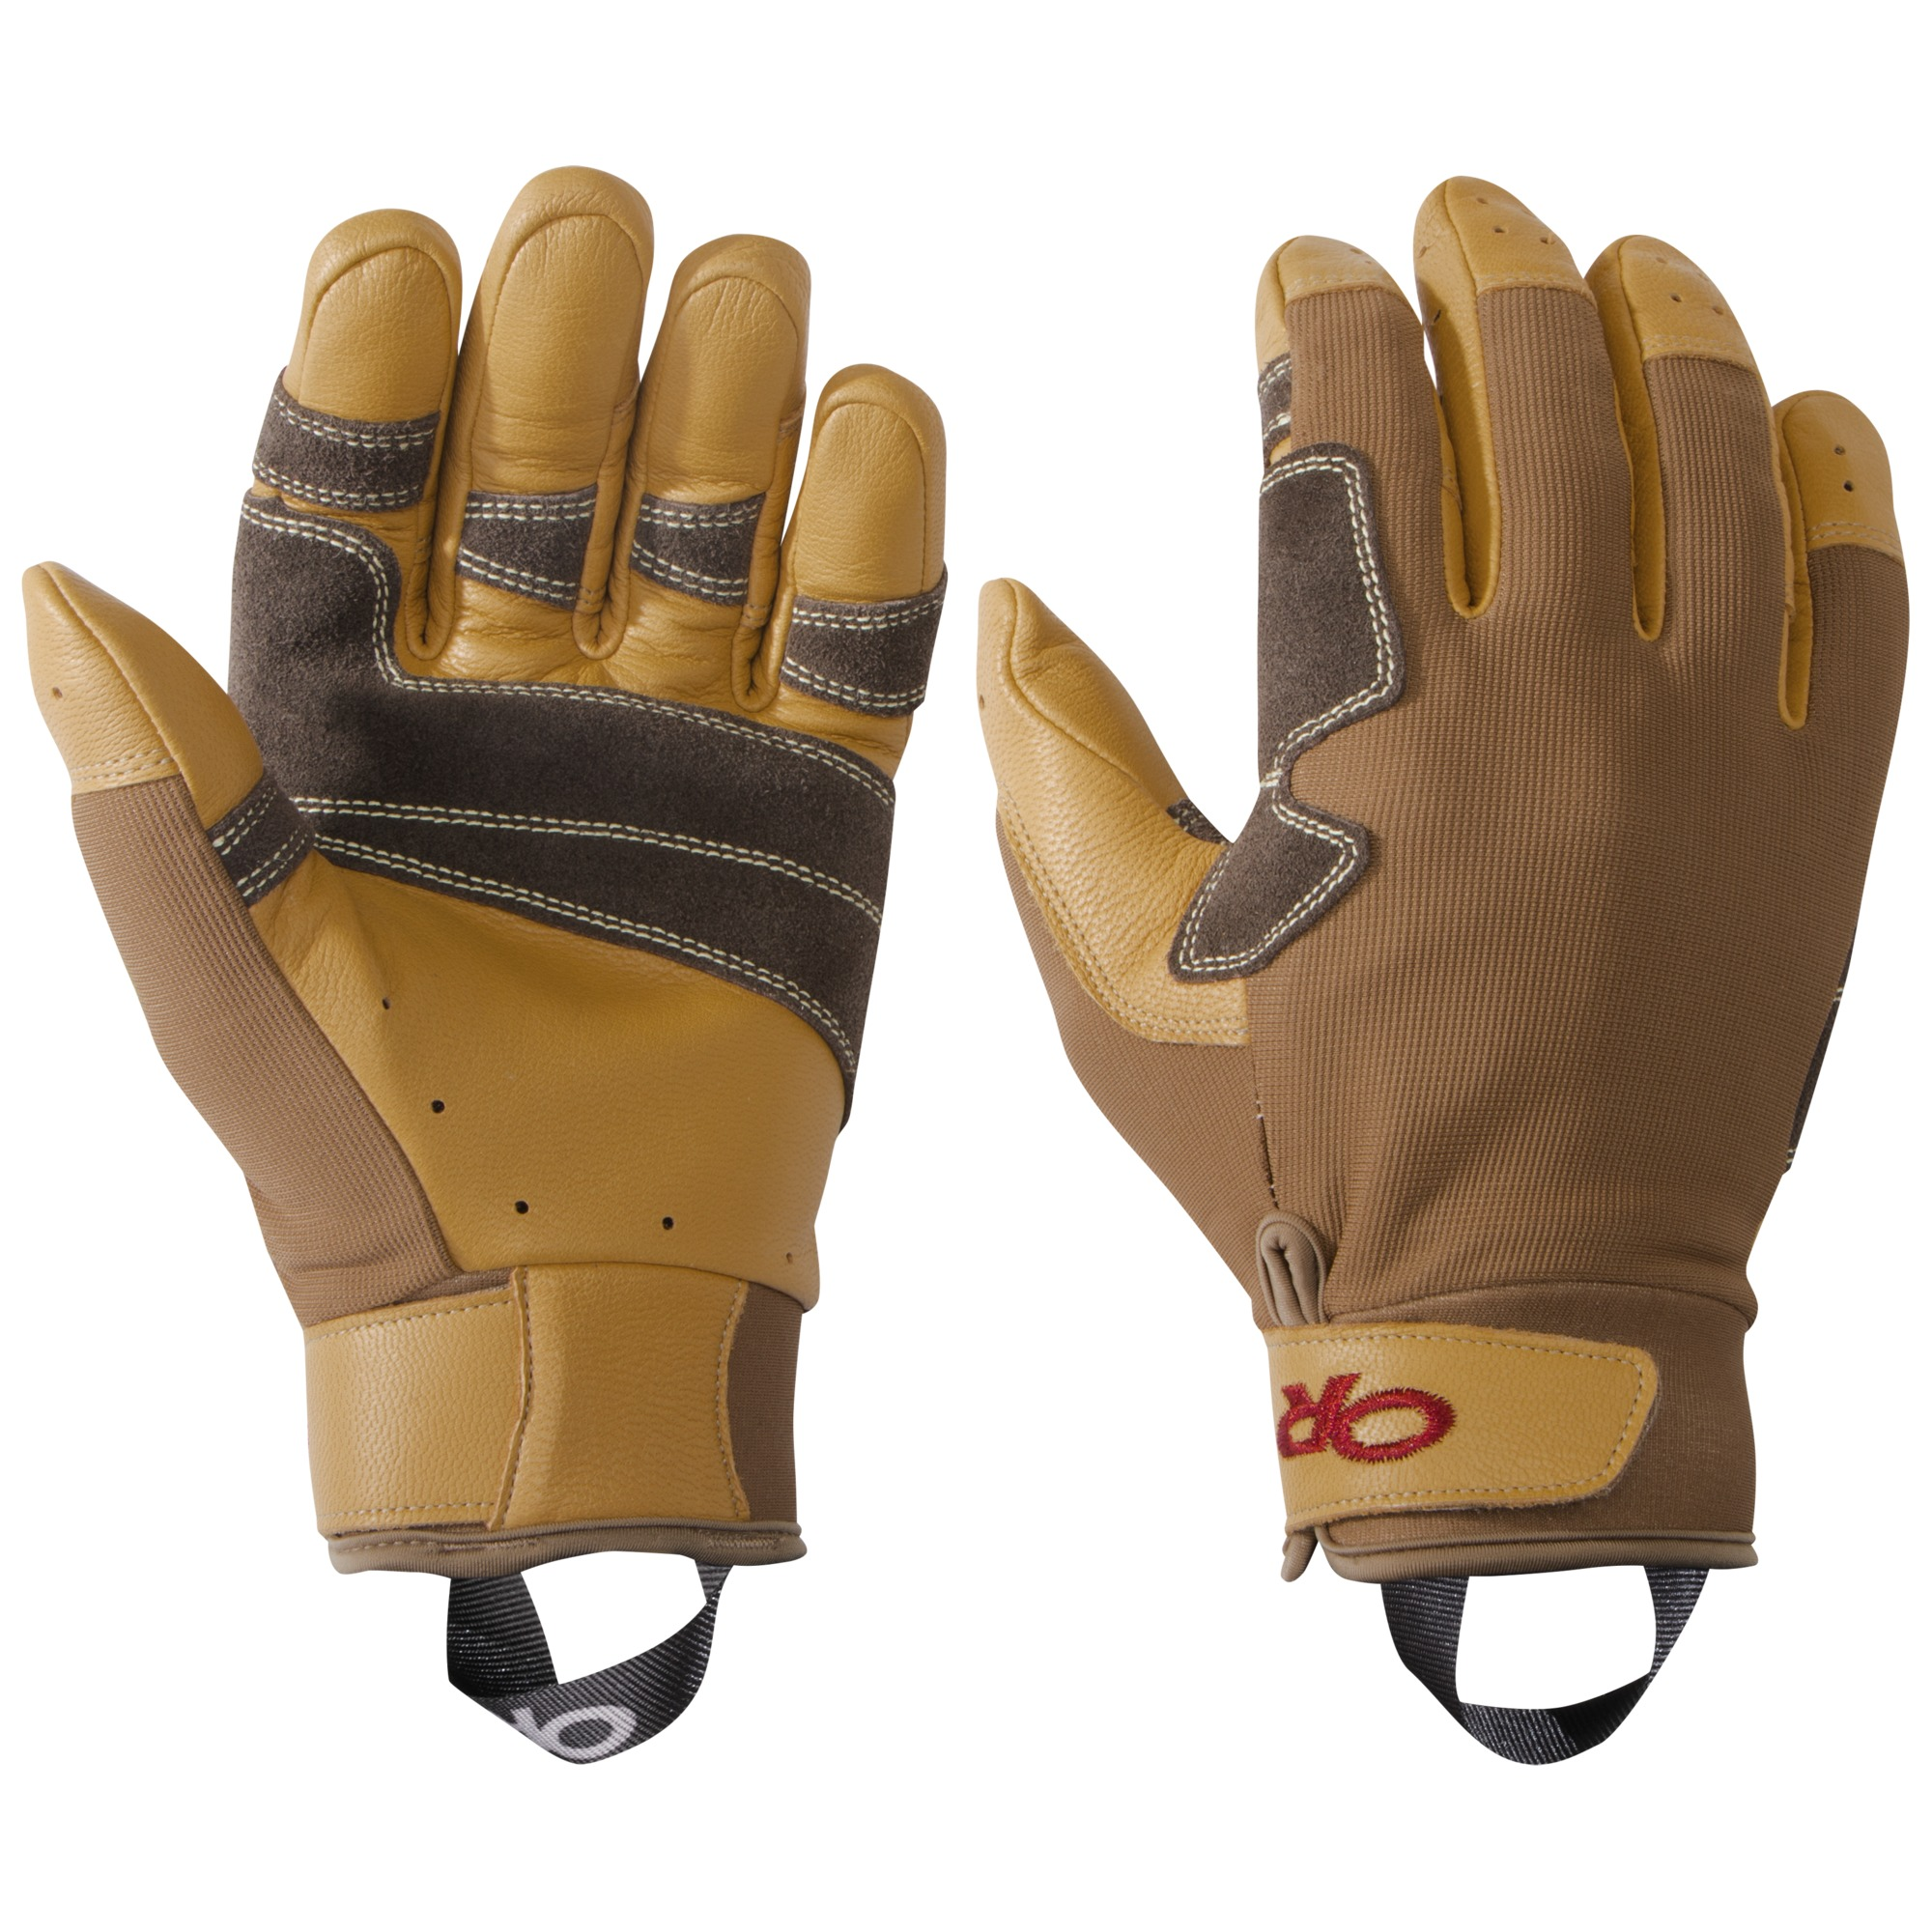 Outdoor Research Direct Route Gloves-natural/earth-M - Gr. M